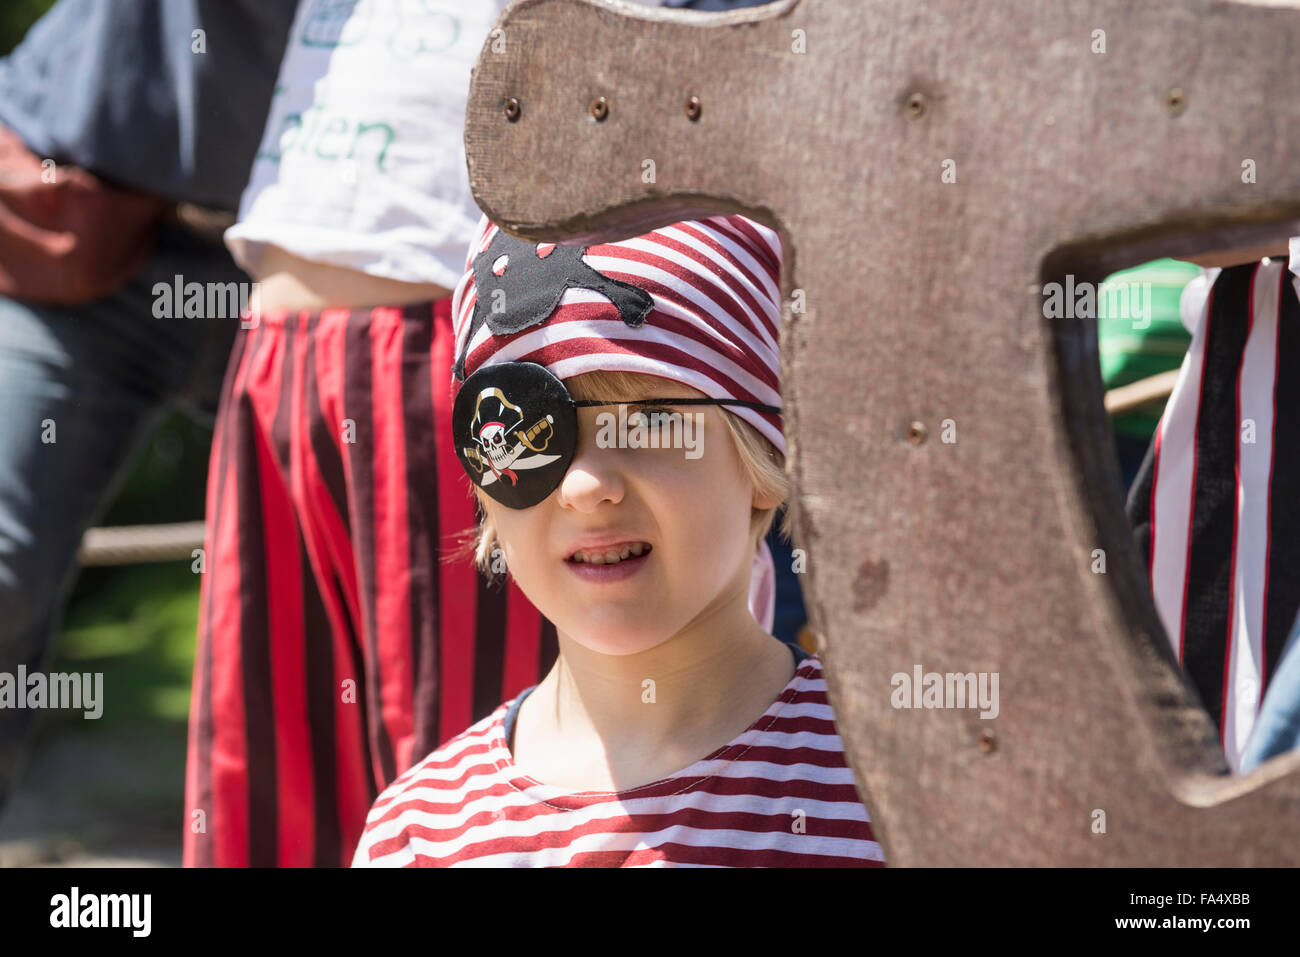 Boy dressed up as pirate in playground, Bavaria, Germany - Stock Image